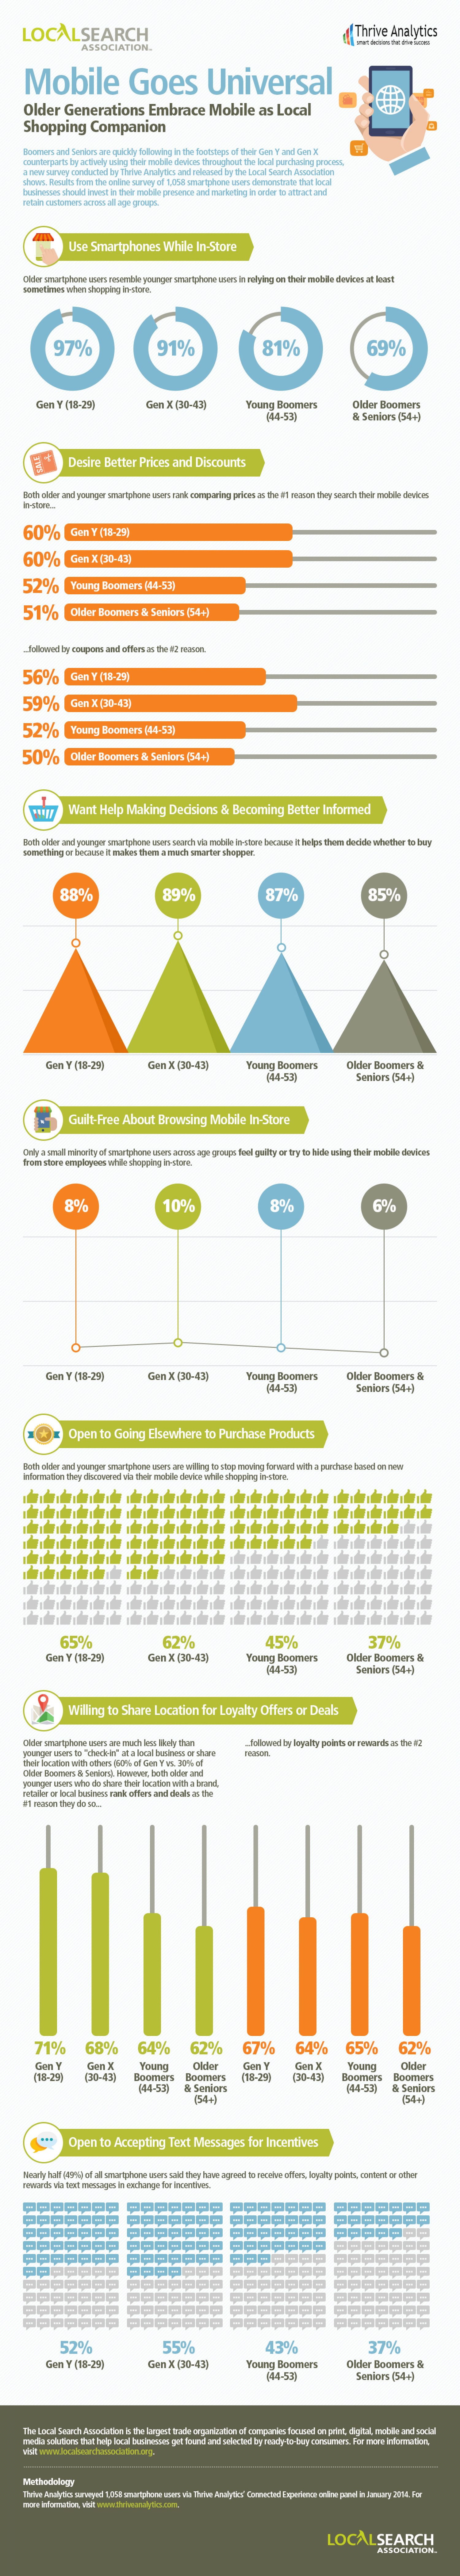 Mobile Goes Universal: Older Generations Embrace Mobile as Local Shopping Companion Infographic